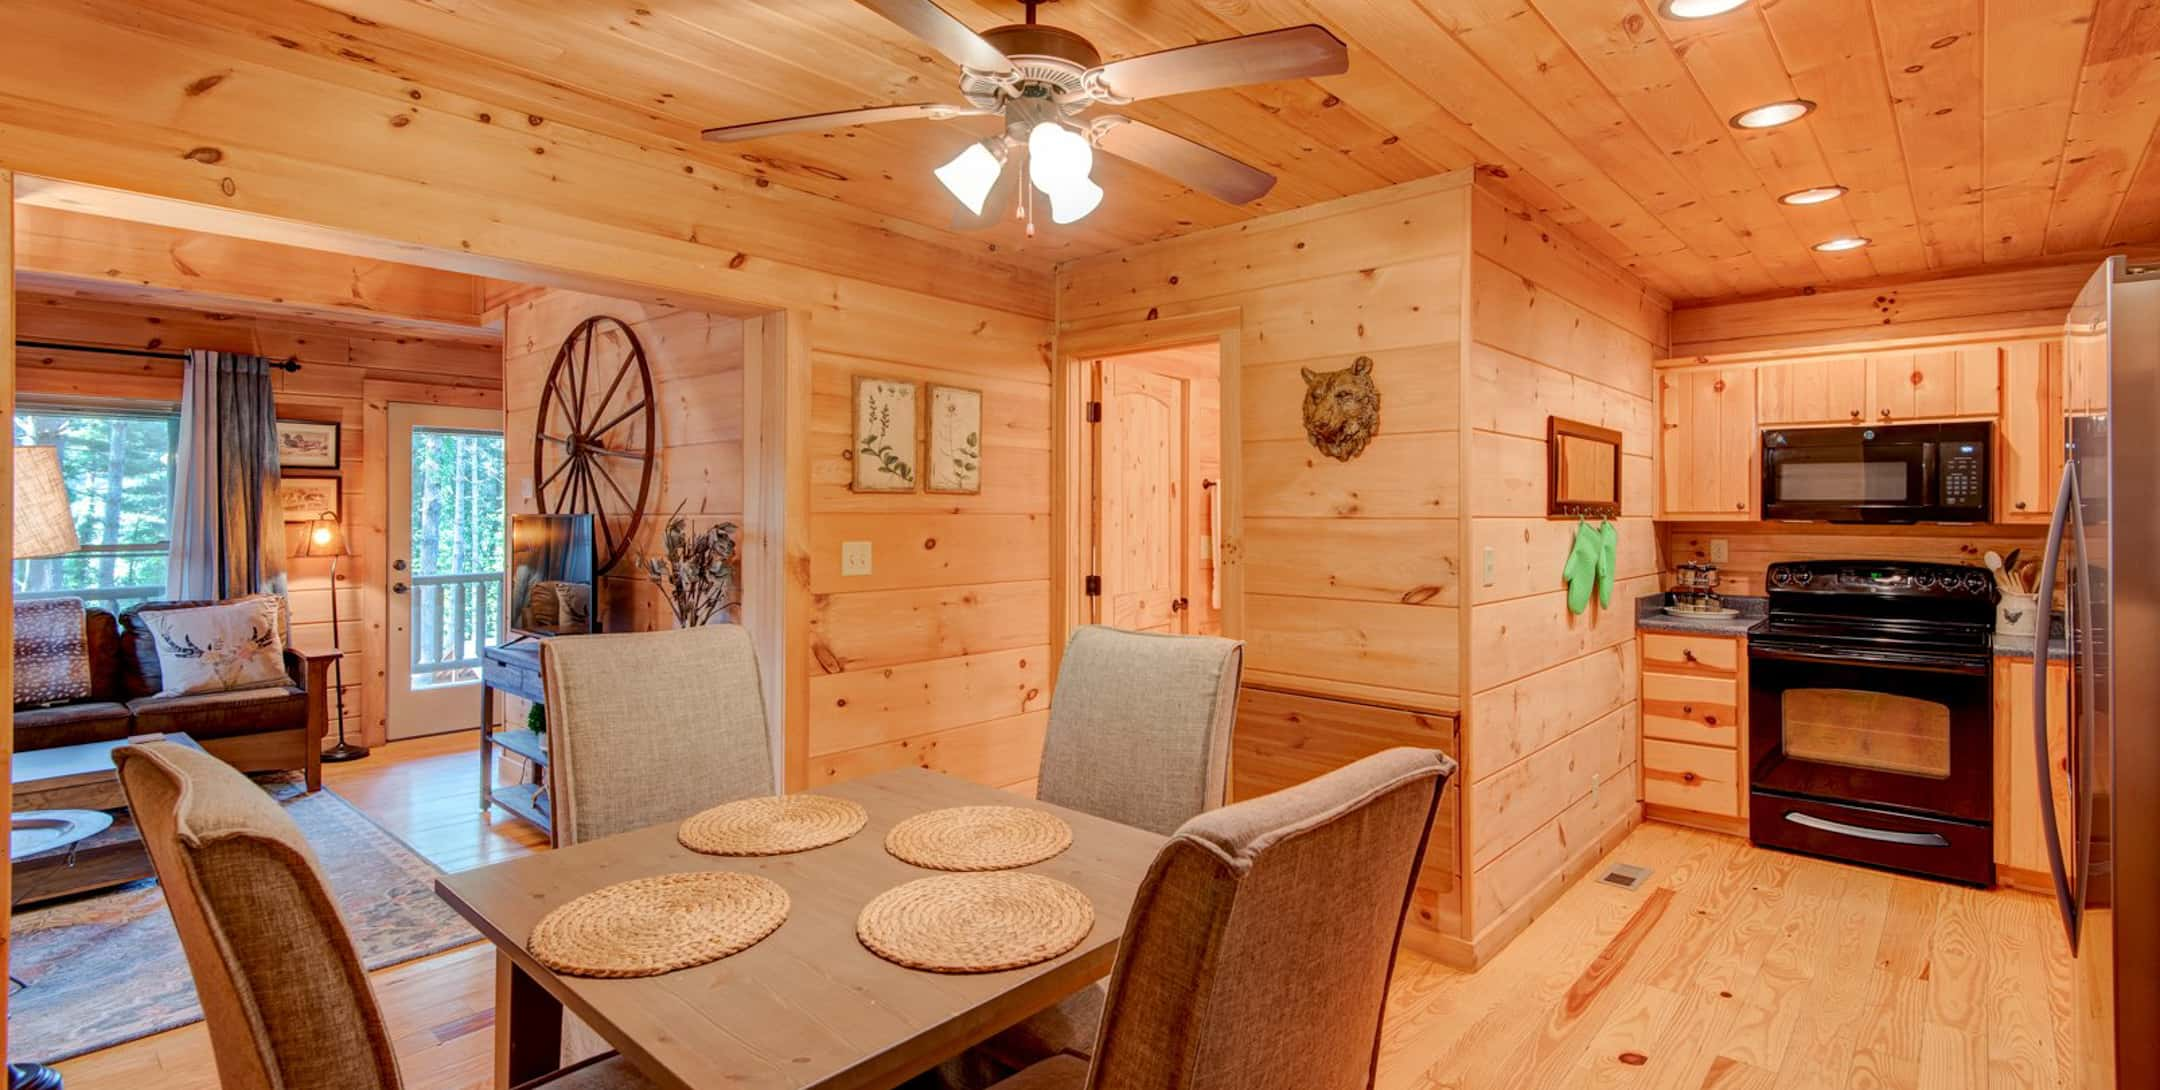 Dining table and kitchen in the Uncle Earl Cabin